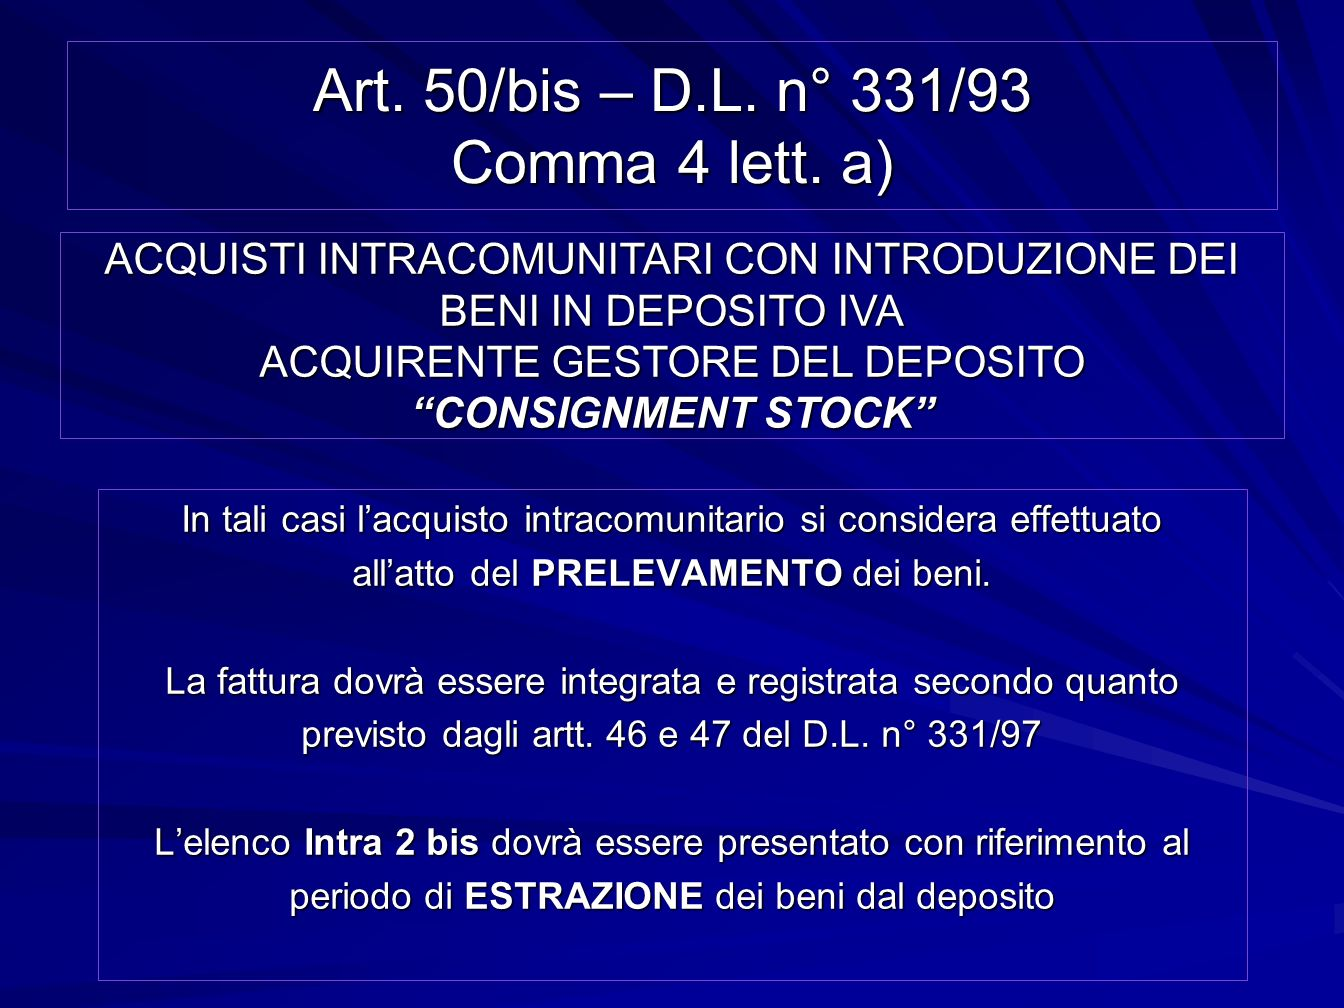 Art. 50/bis – D.L. n° 331/93 Comma 4 lett. a)